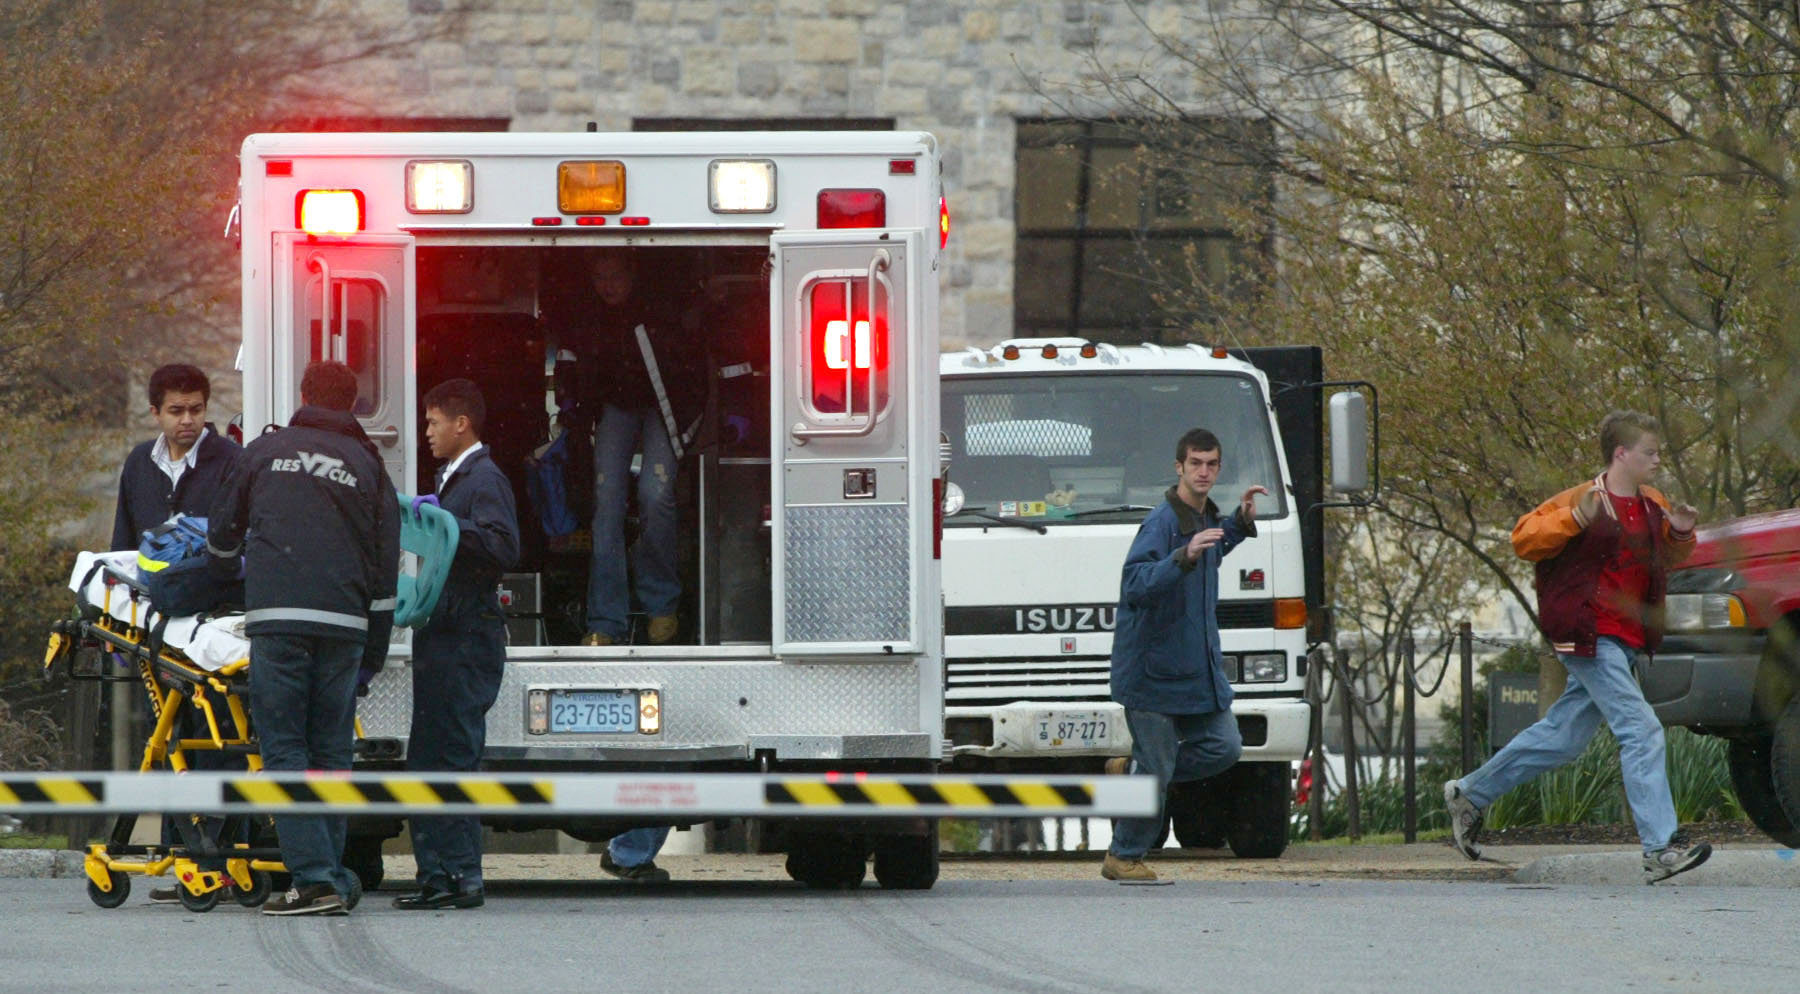 Virginia Tech students run from Norris Hall as an ambulance crew arrives on the scene in Blacksburg, Va., Monday, April 16, 2007